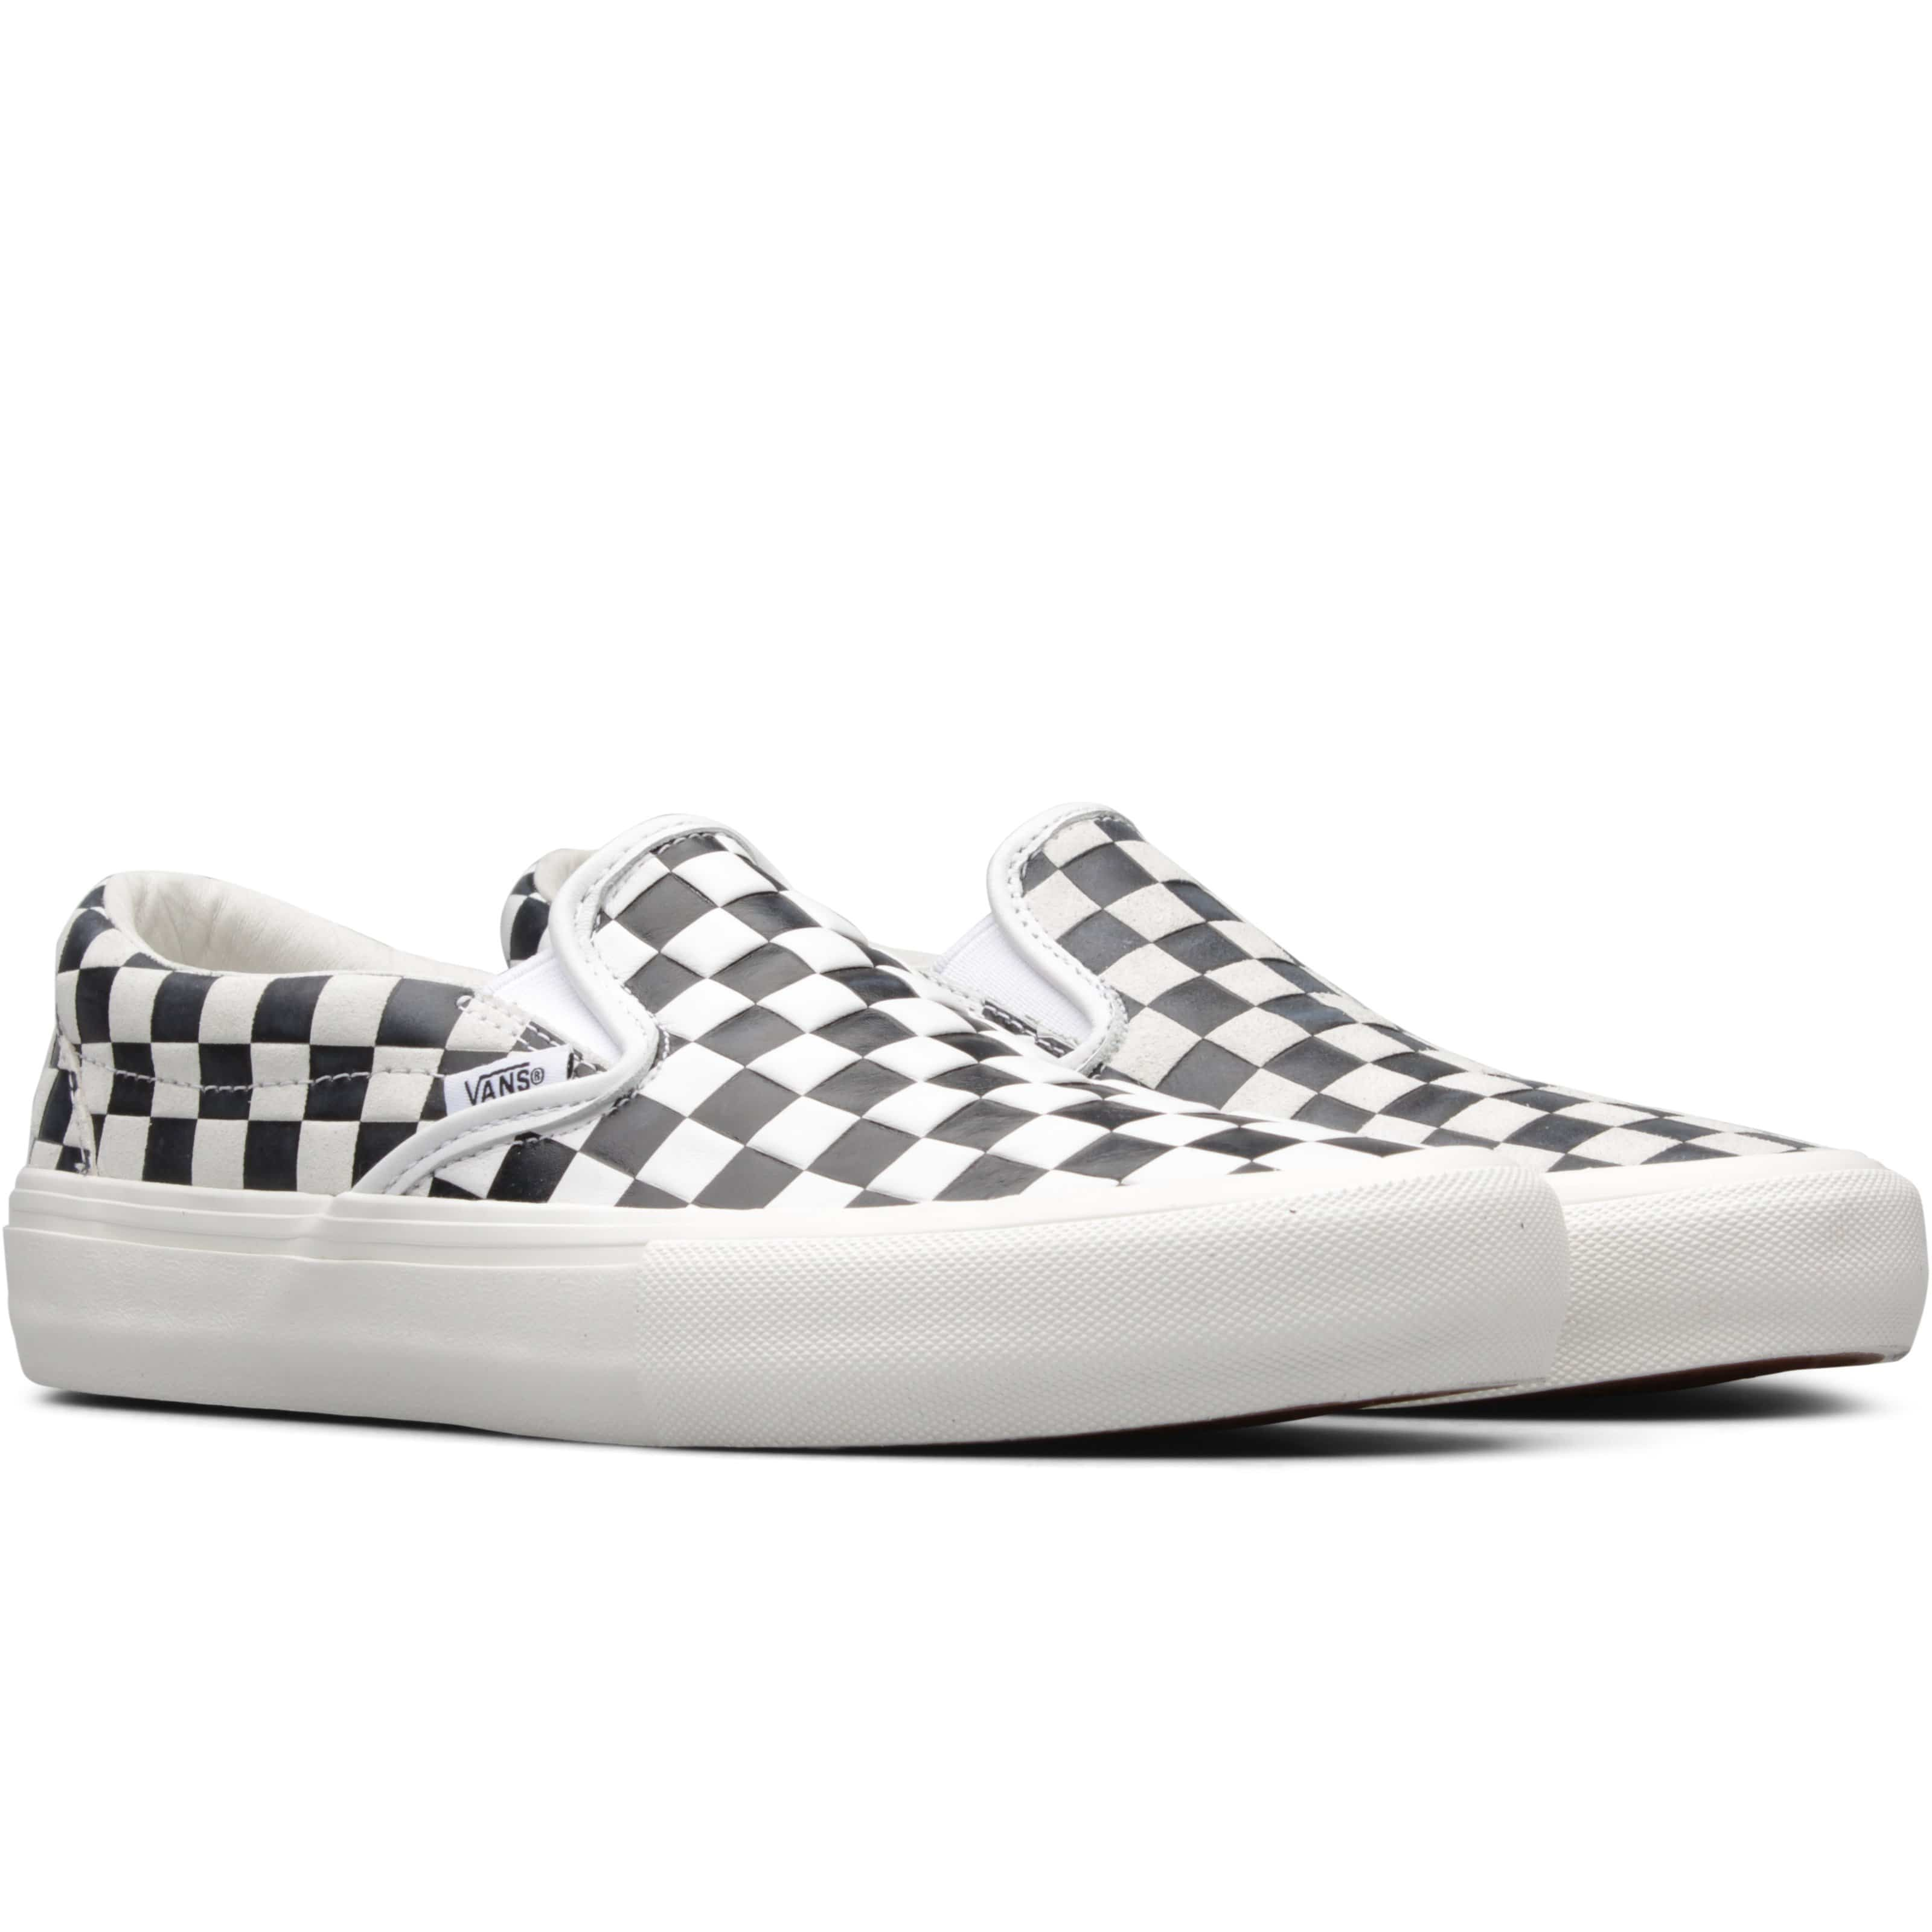 Vault by Vans Shoes x Engineered Garments CLASSIC SLIP-ON LX